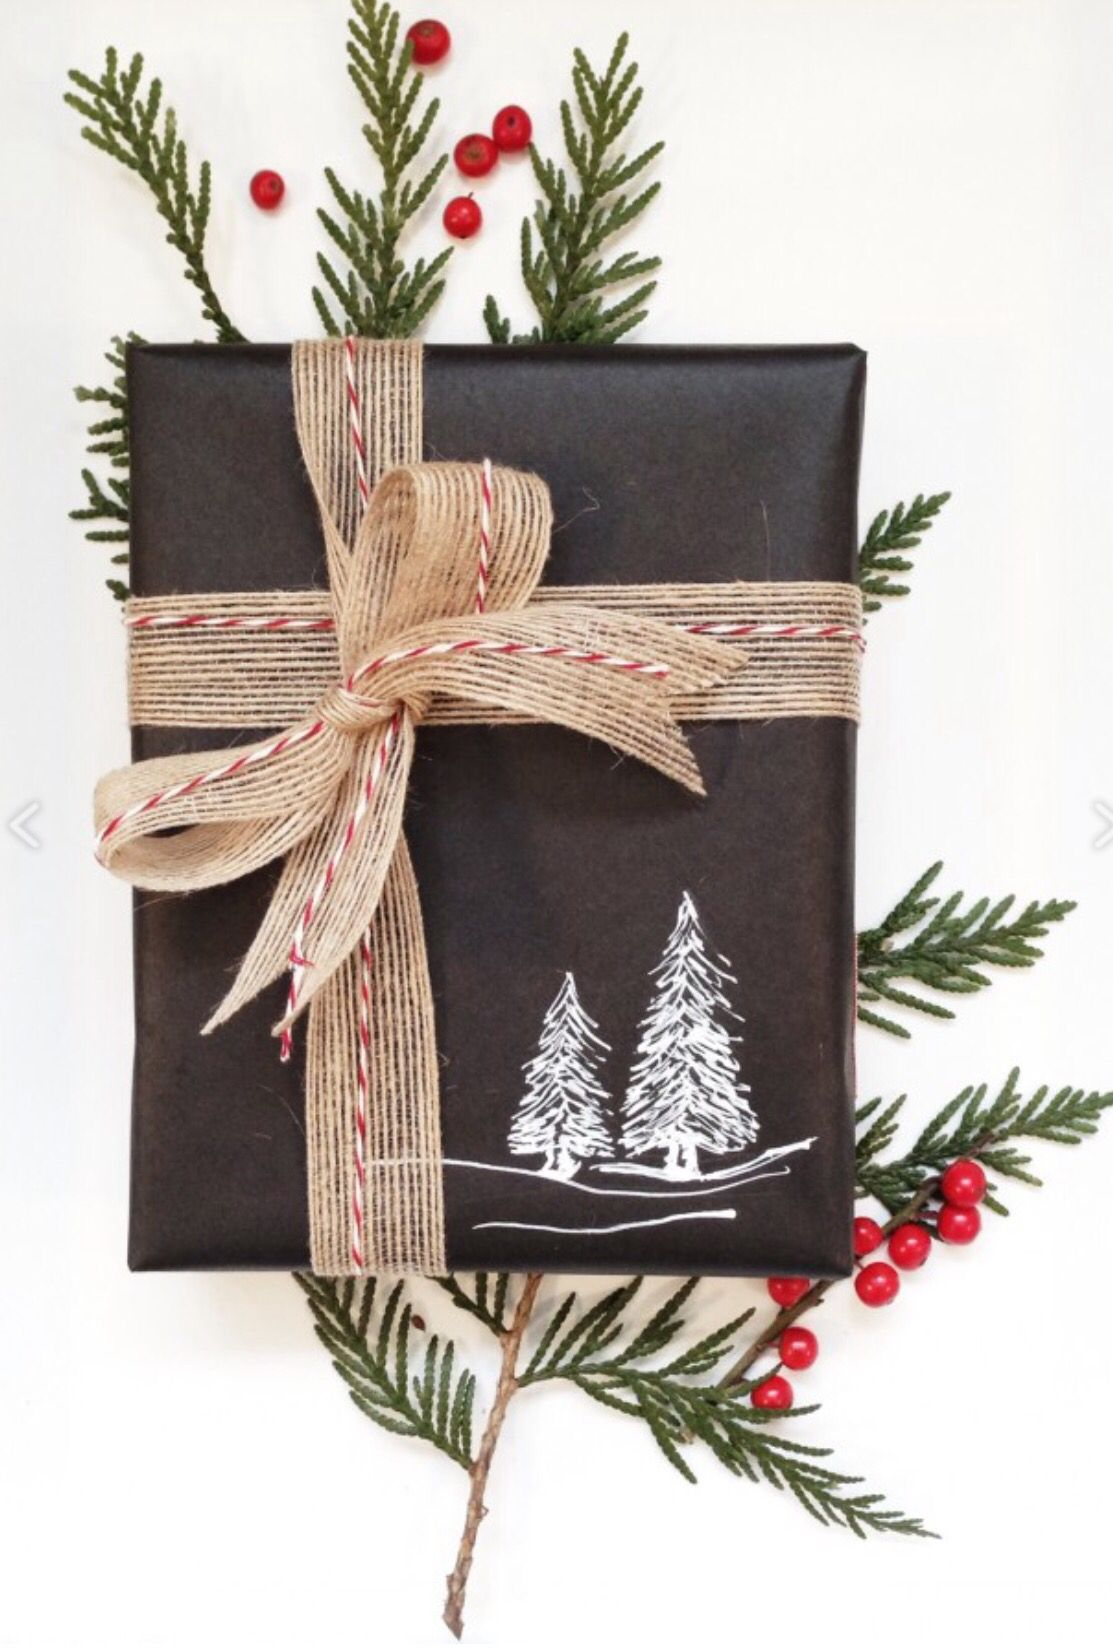 Chalkboard wrapping idea for Christmas | Christmas | Pinterest ...